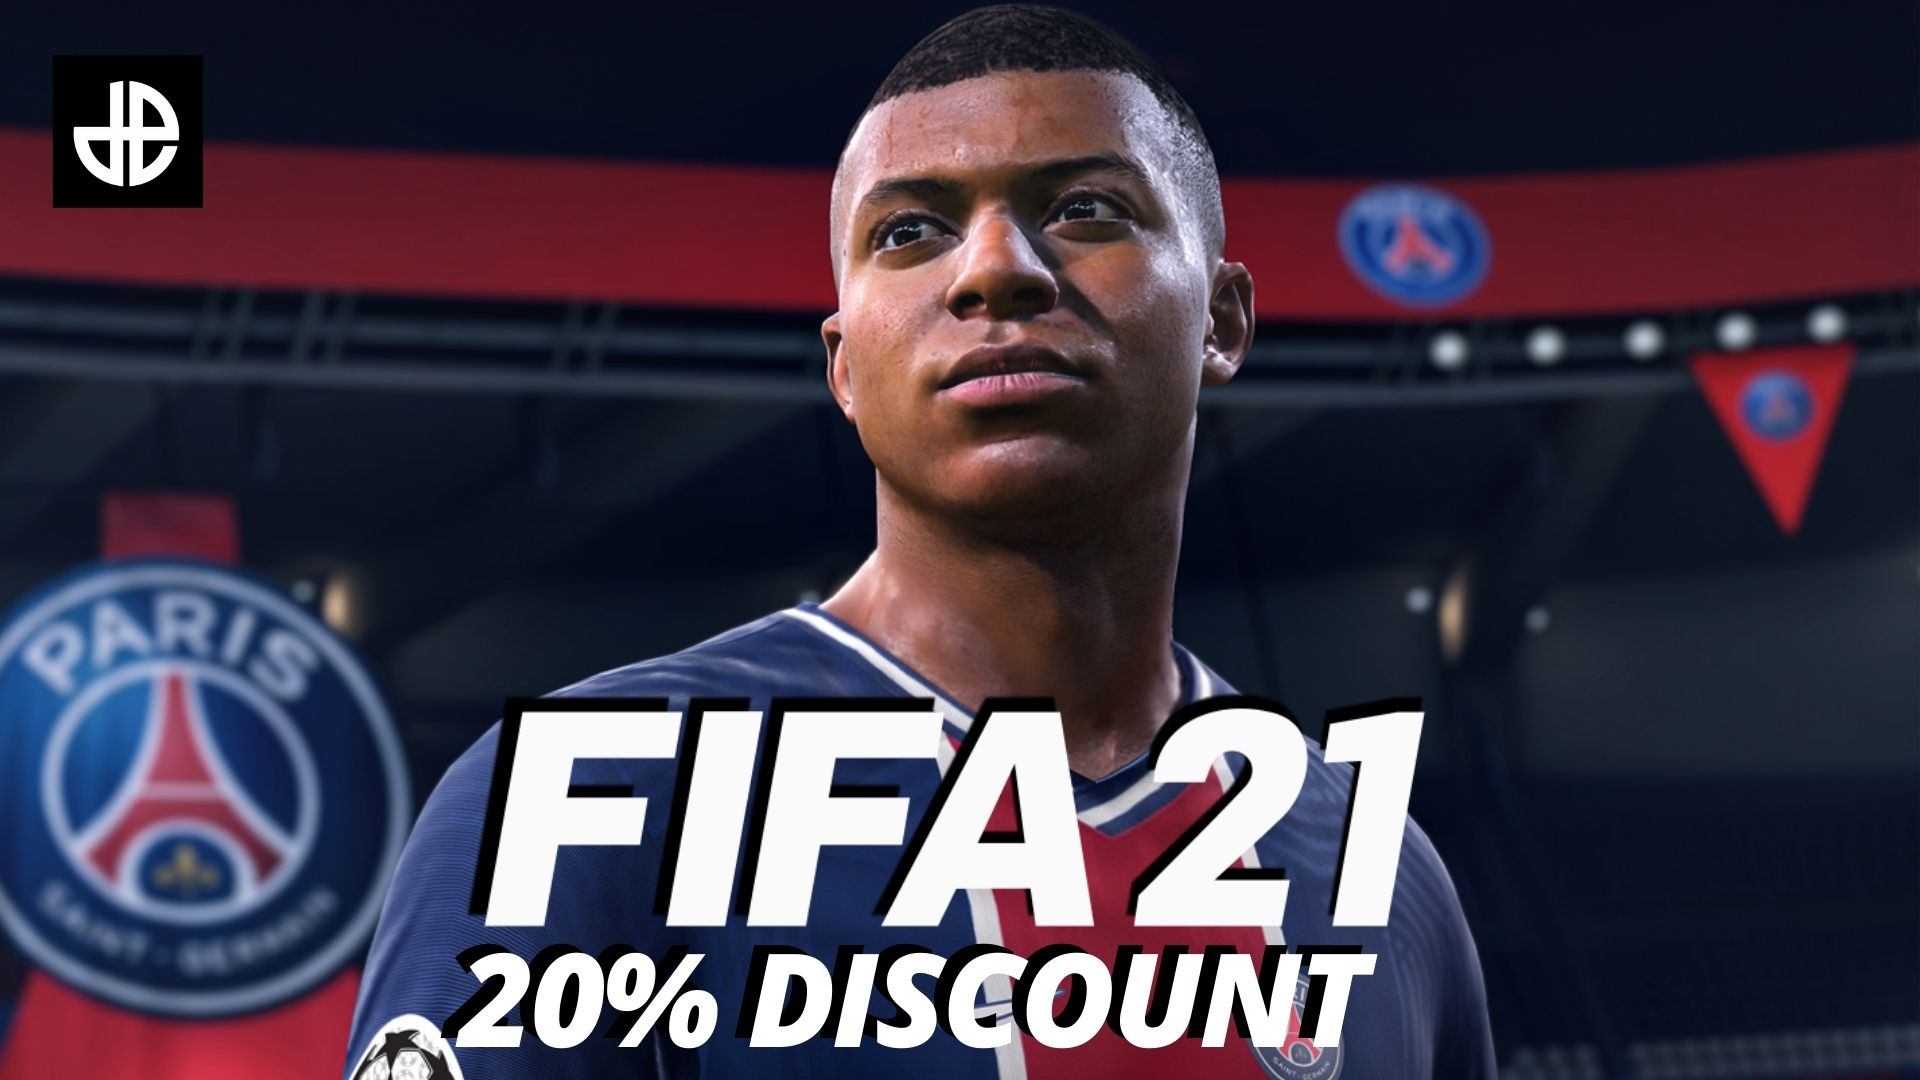 FIFA 21 discount image with Mbappe